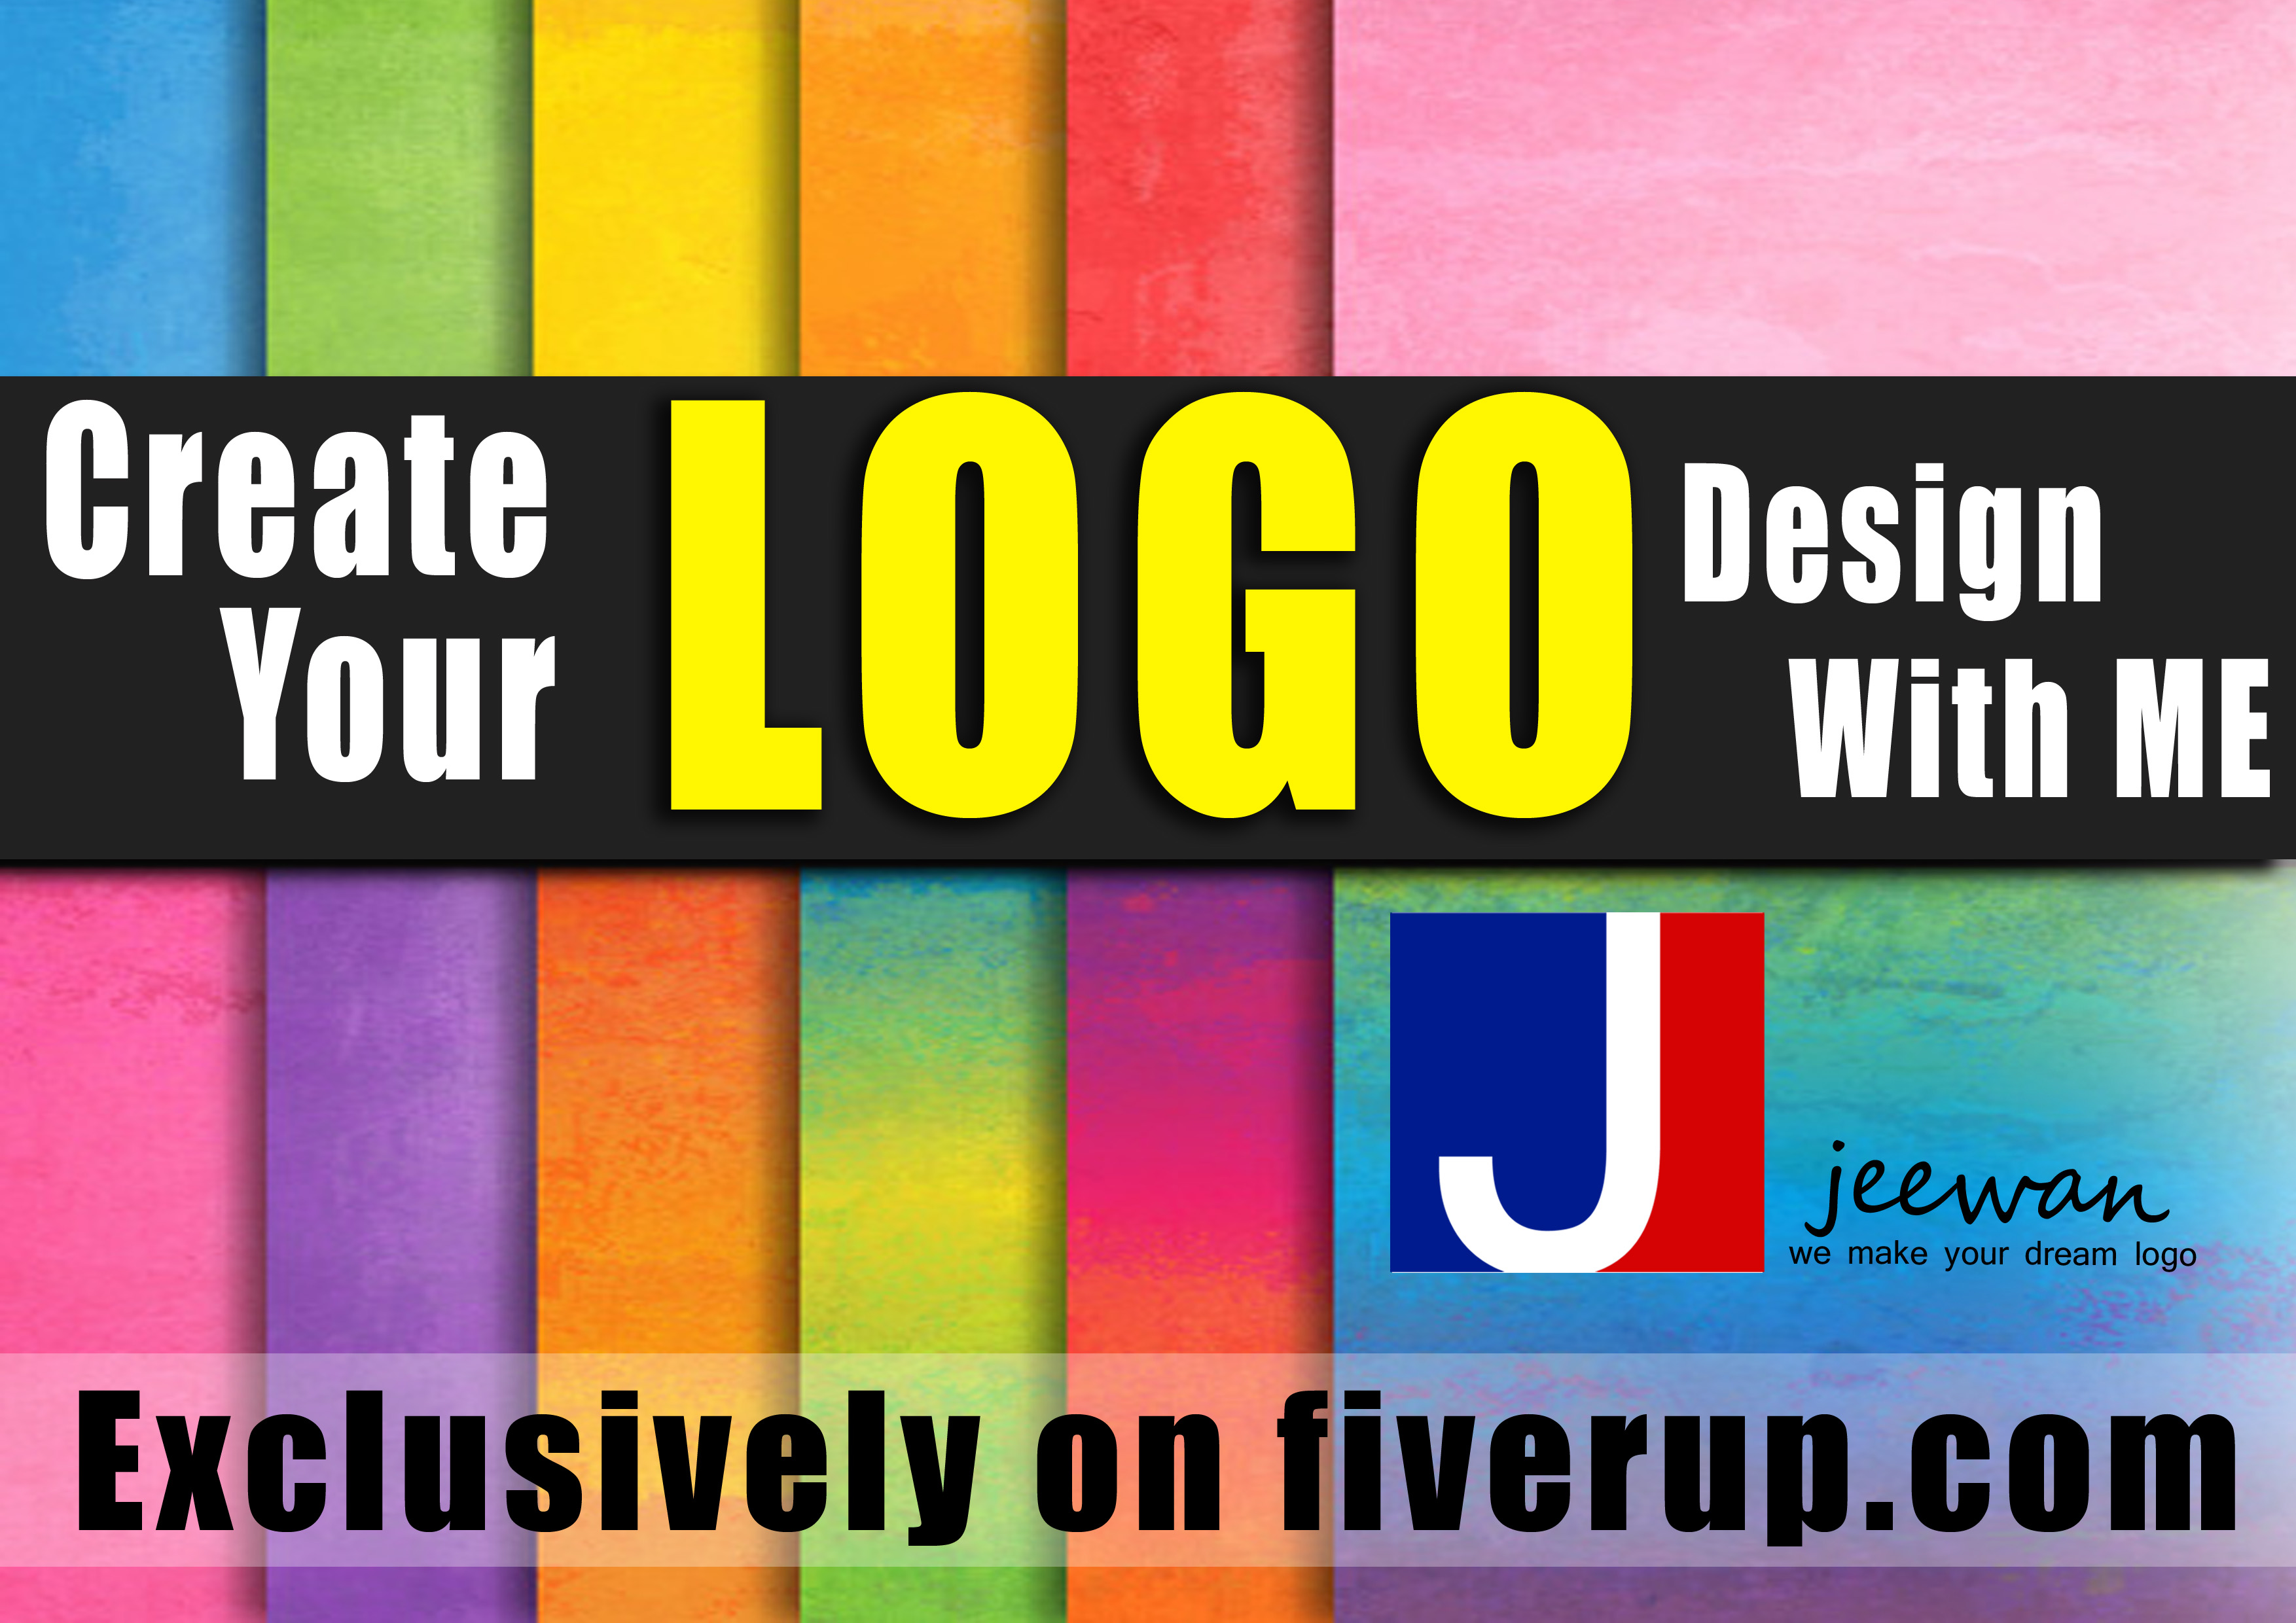 create EXECUTIVE logo for your own business